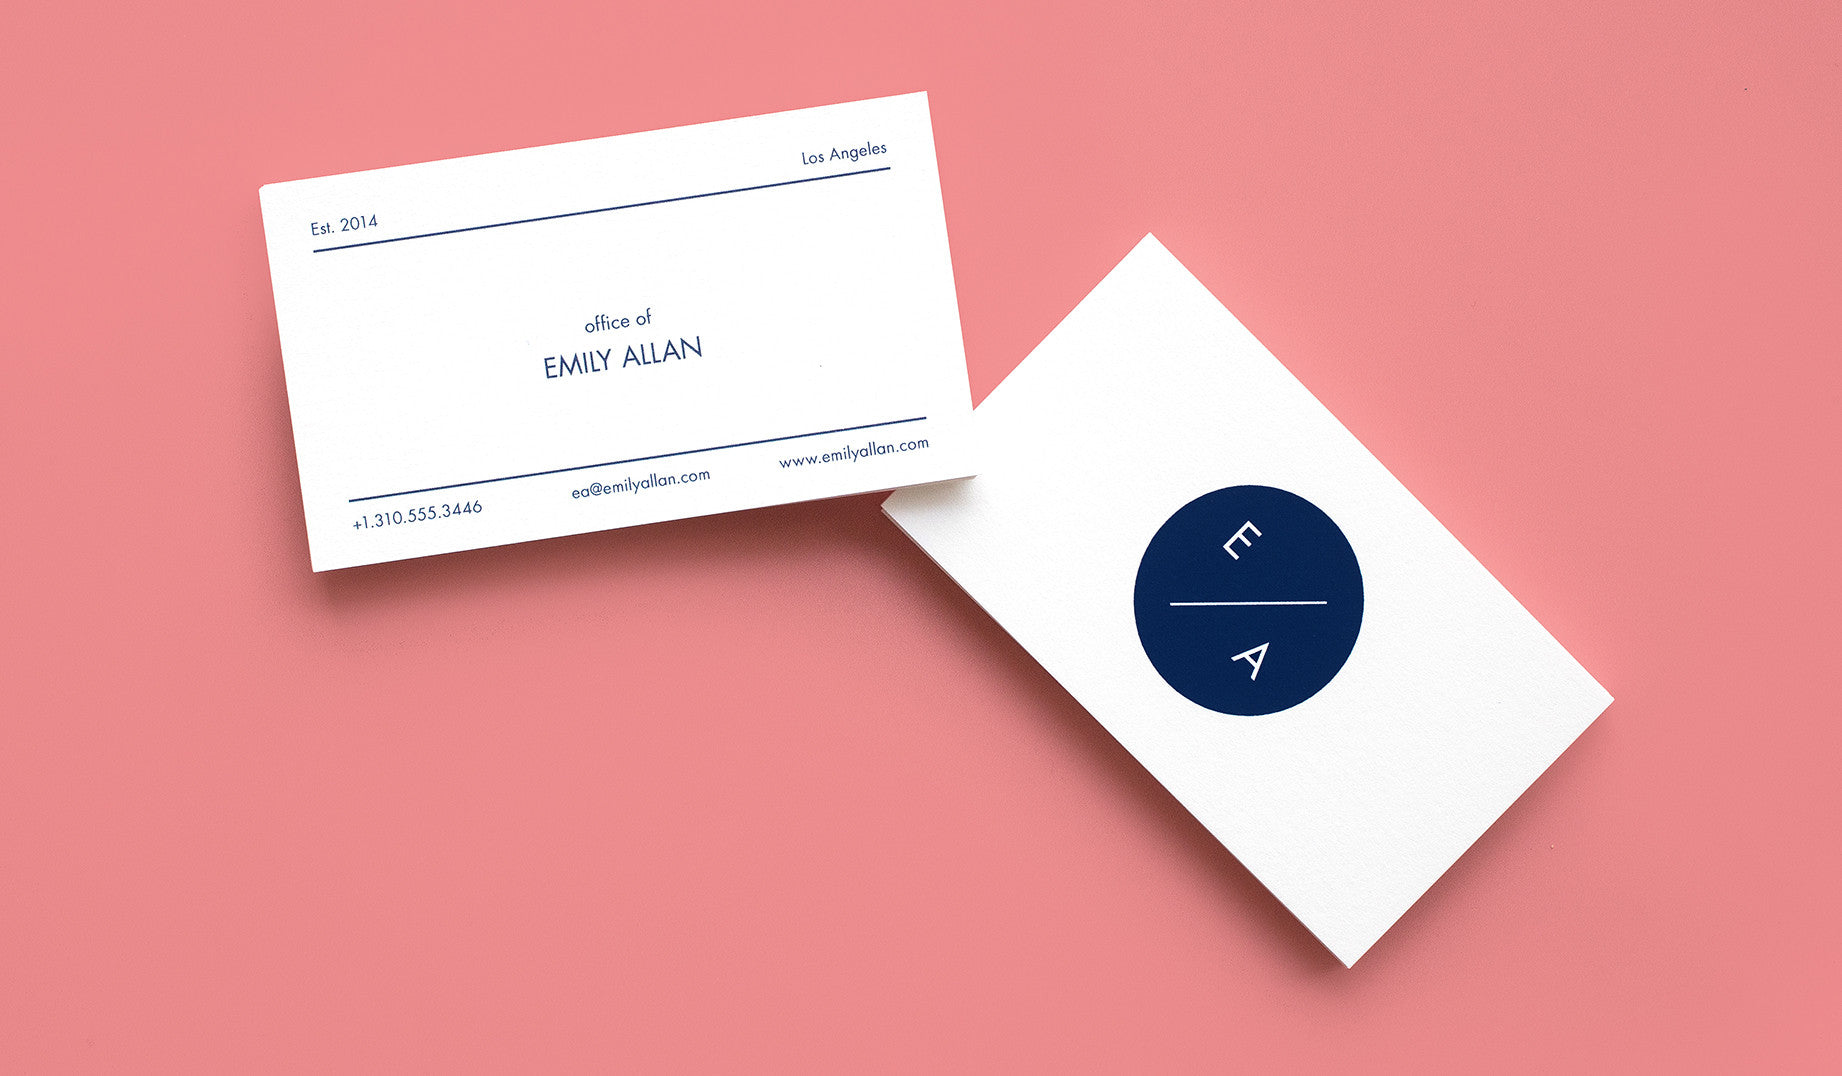 Themed Business Card Office Of – Paper Chase Press